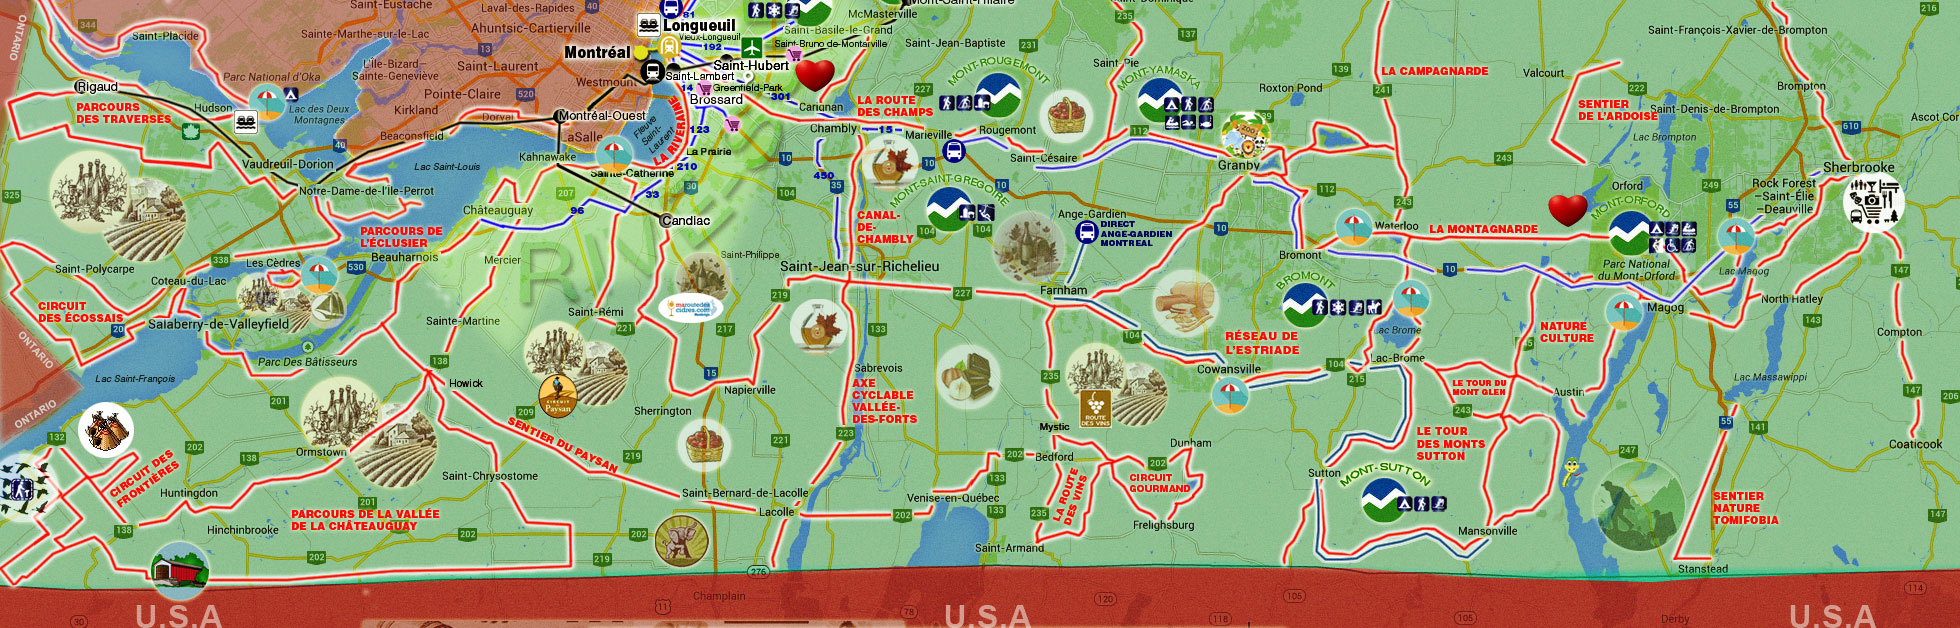 compton on map with Map on Alexandre Calame 1810 1864 Mountain Torrent The Bernese Oberland Switzerland PortalDefault as well File 1998 Asian Games medal map together with Studio City  Los Angeles in addition Tavistock Square London Map also 7260948368.